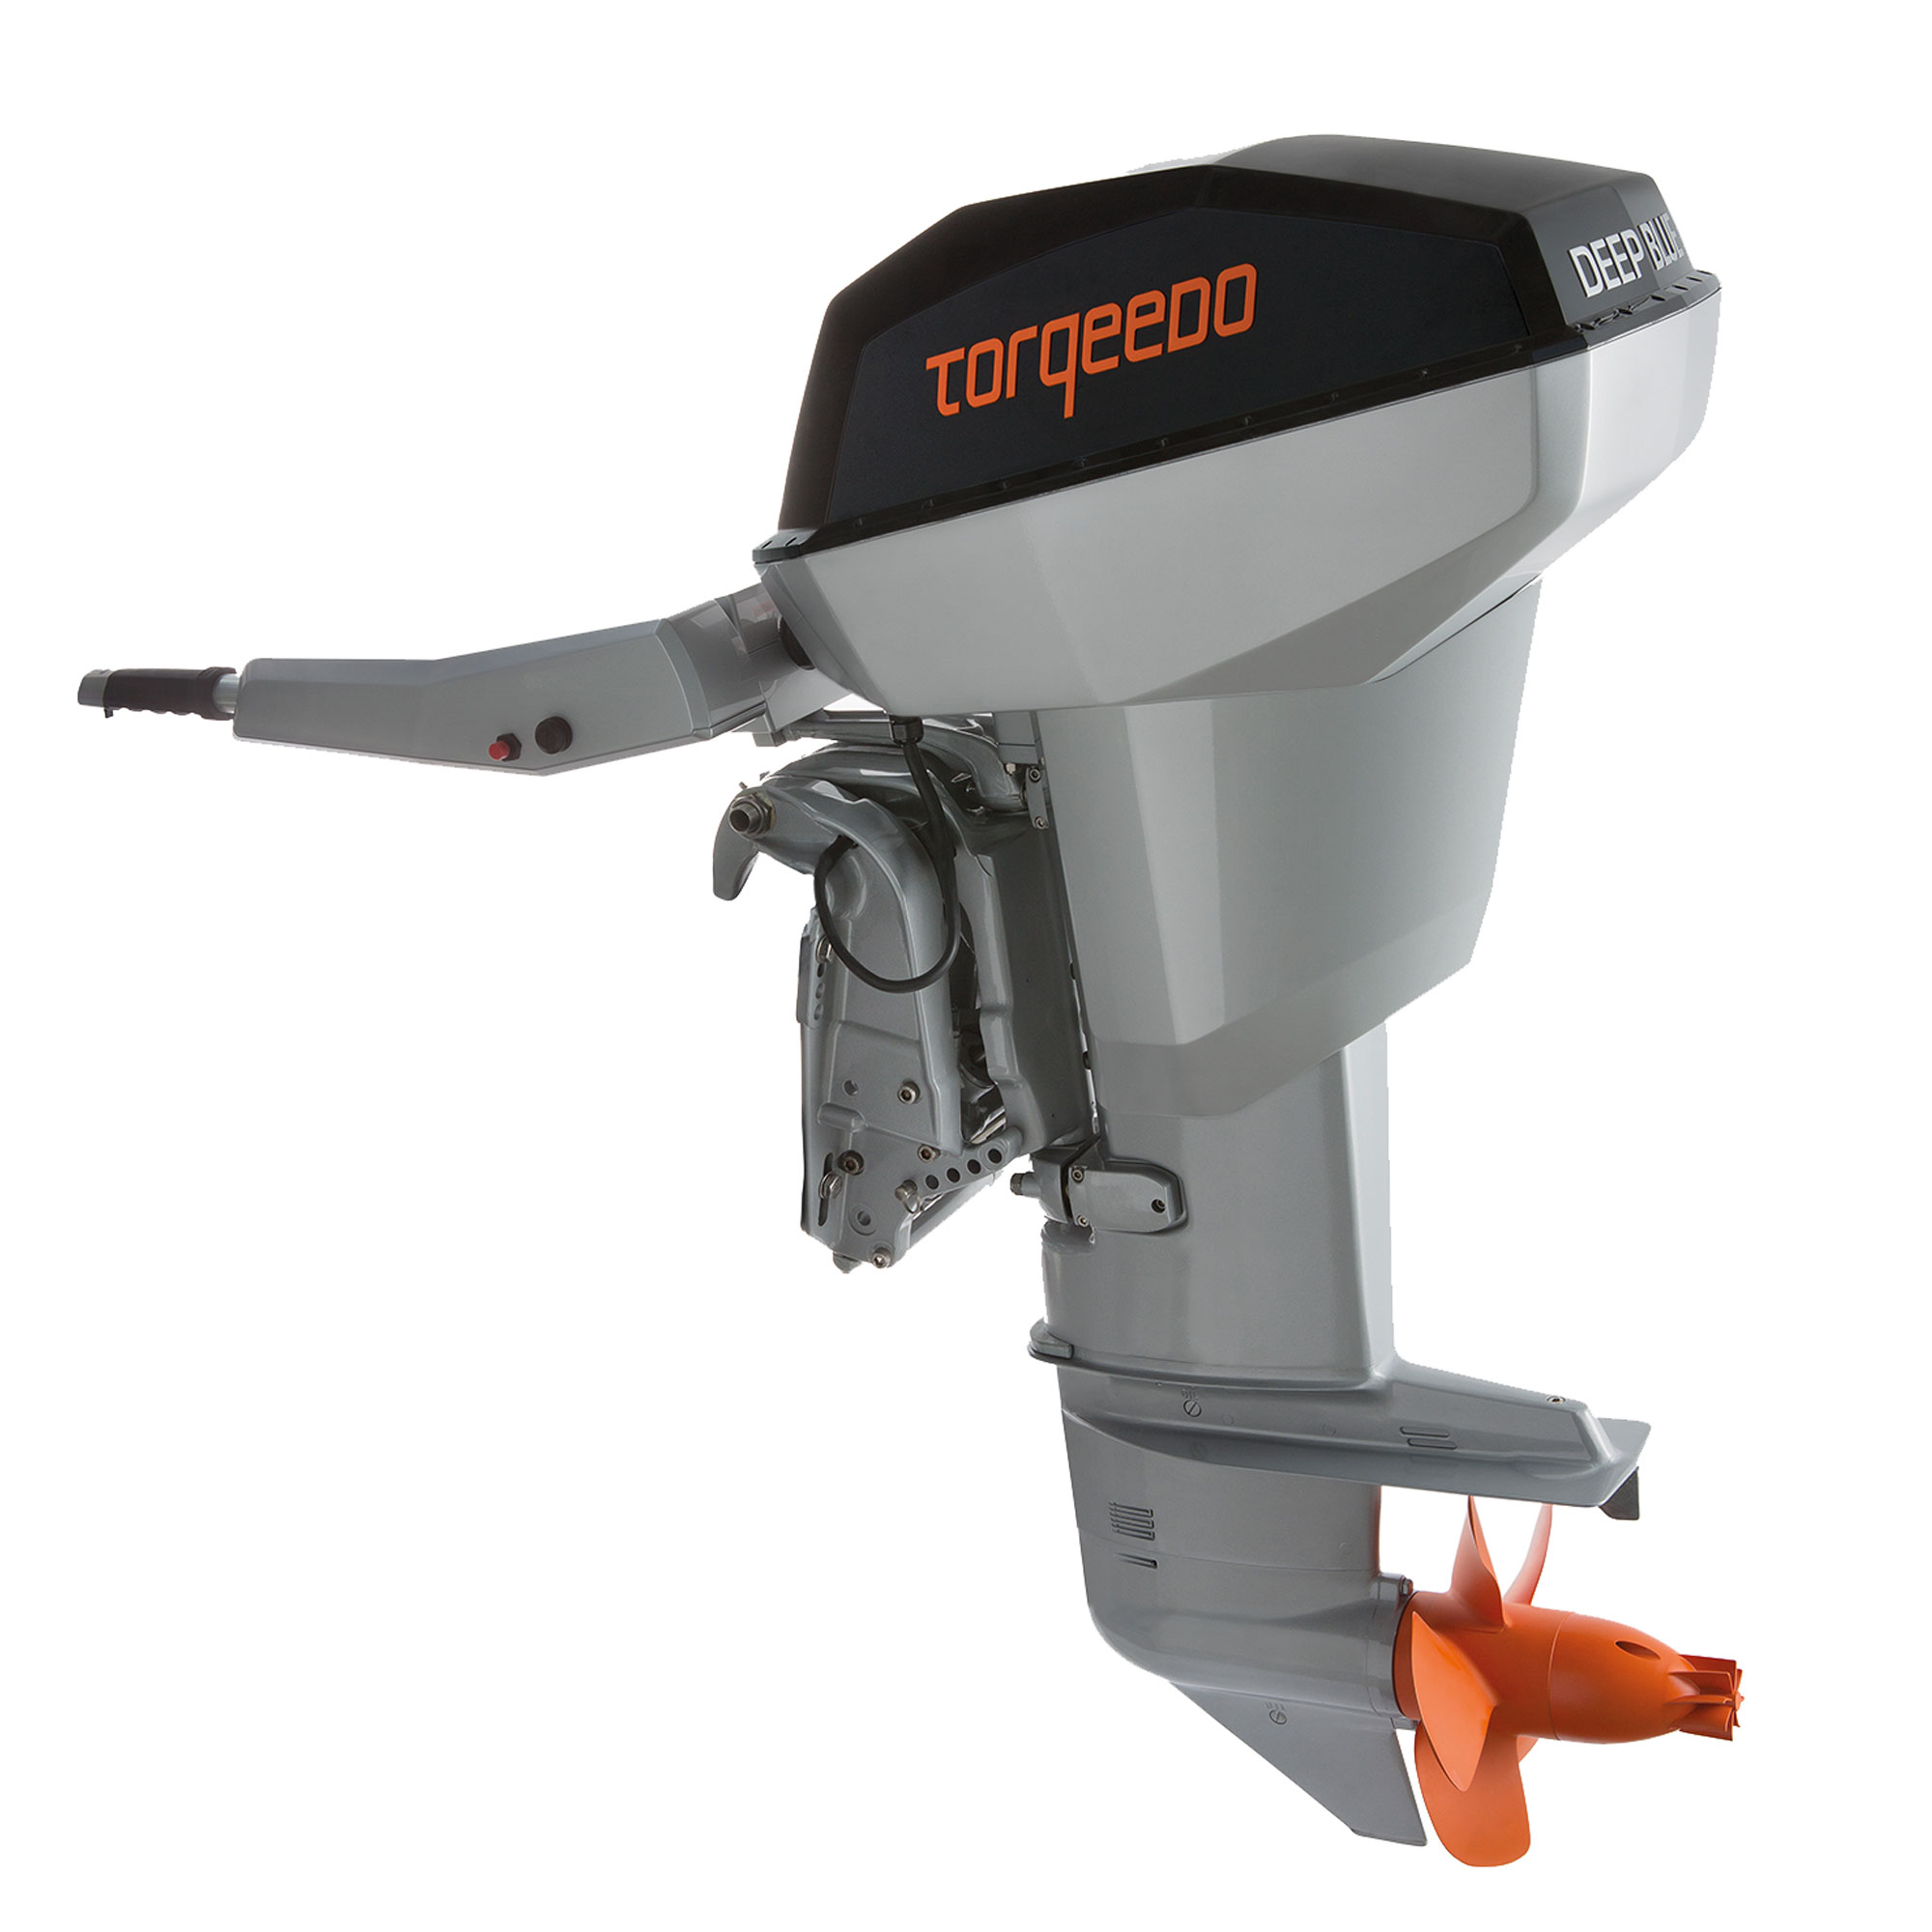 Outboard Deep Blue 40 T Torqeedo Mdc300120151 Brushless Speed Controllers 1hp And Over Txl